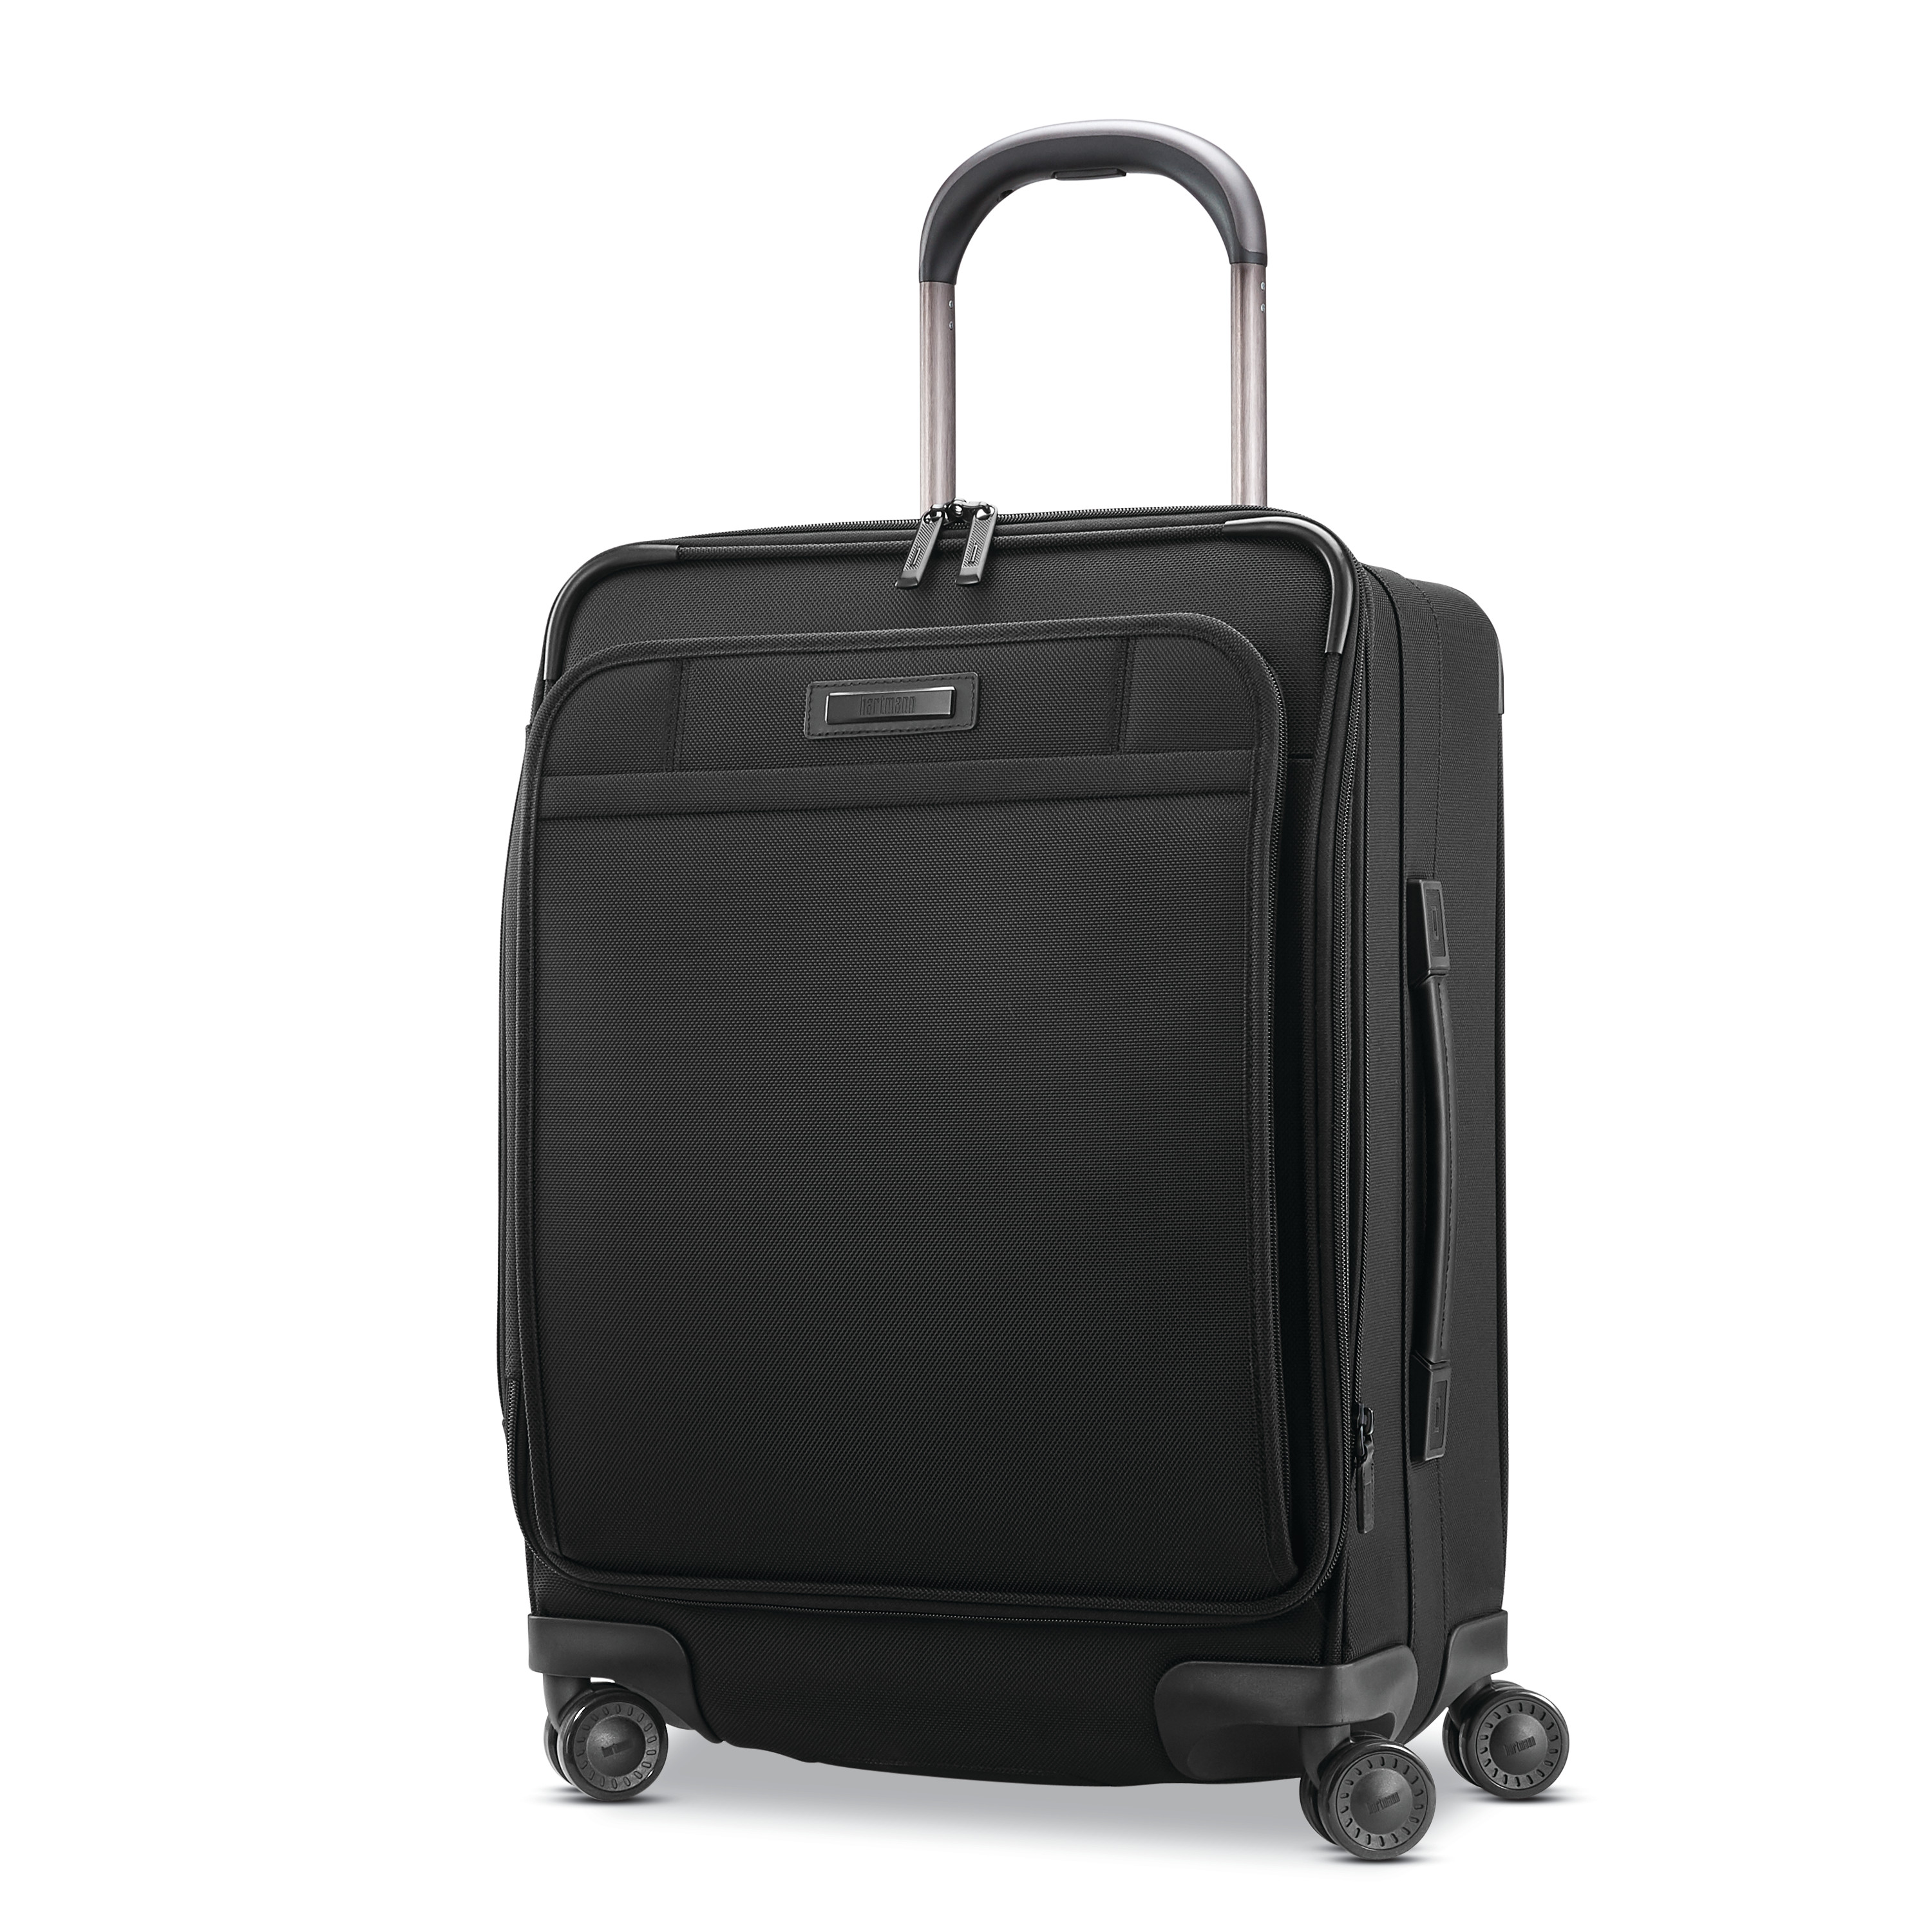 c20c0816a7 Hartmann Ratio 2 Domestic Carry-On Spinner in the color True Black.